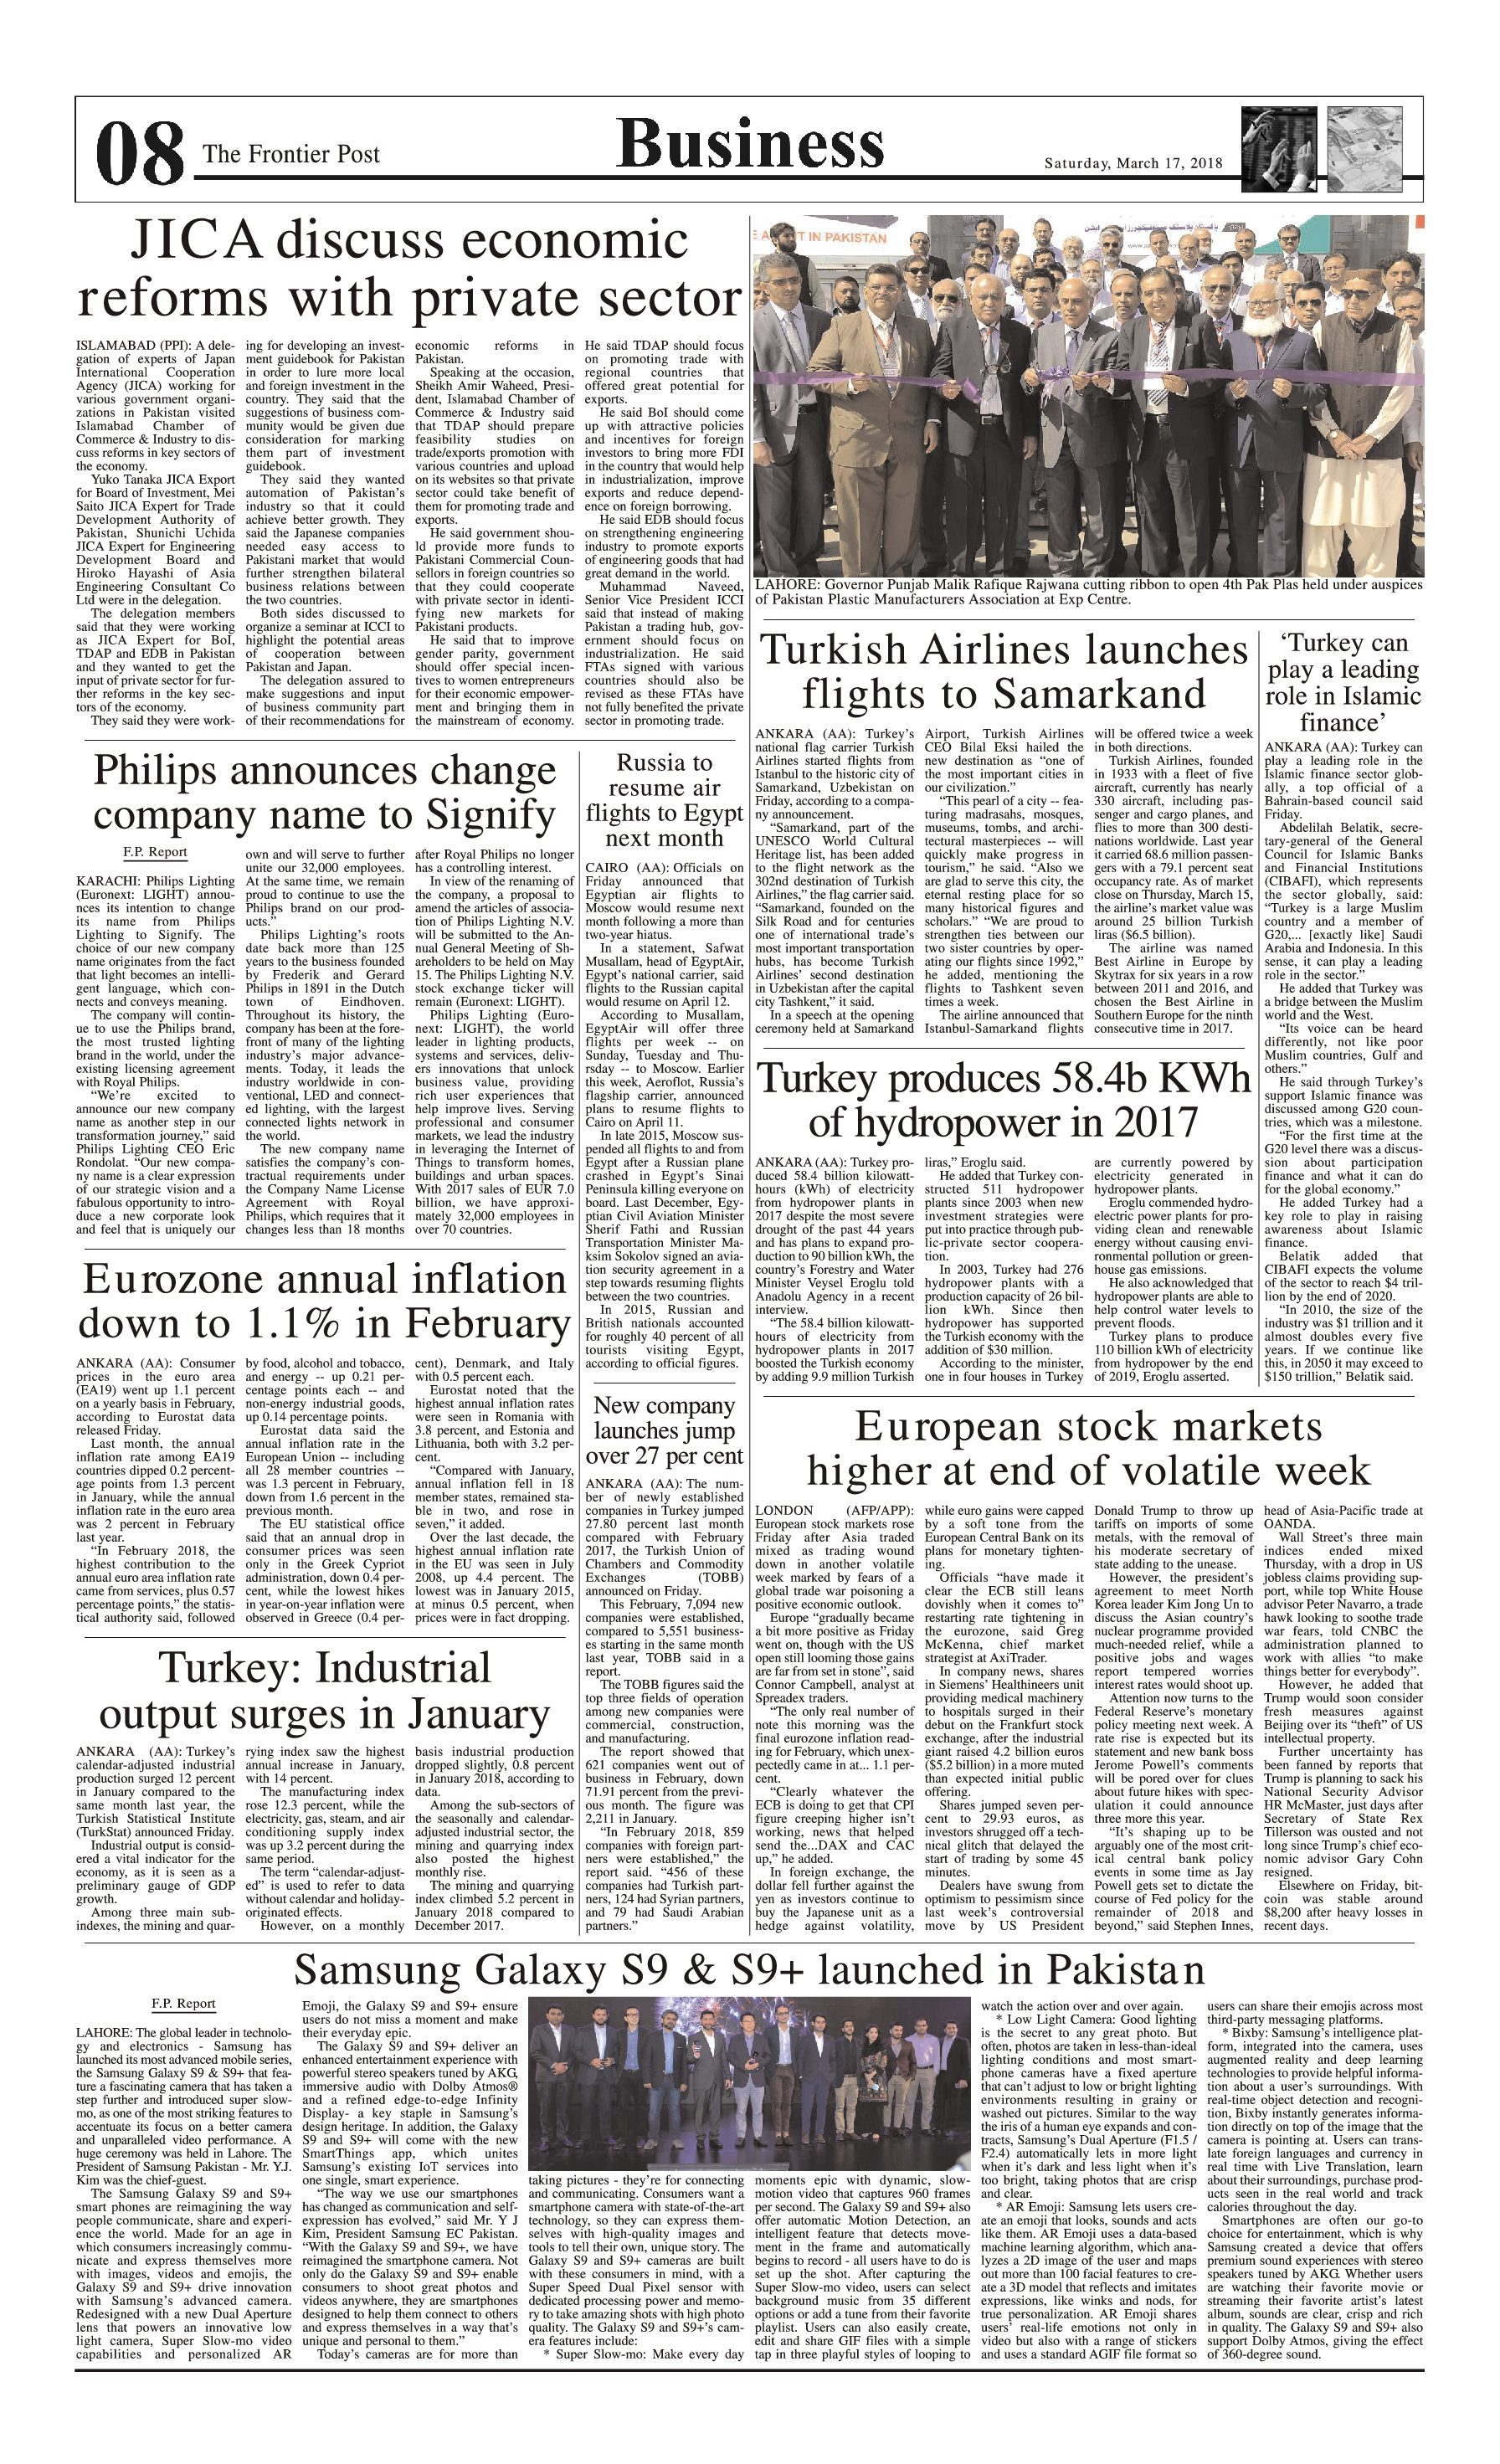 Business Page 17-3